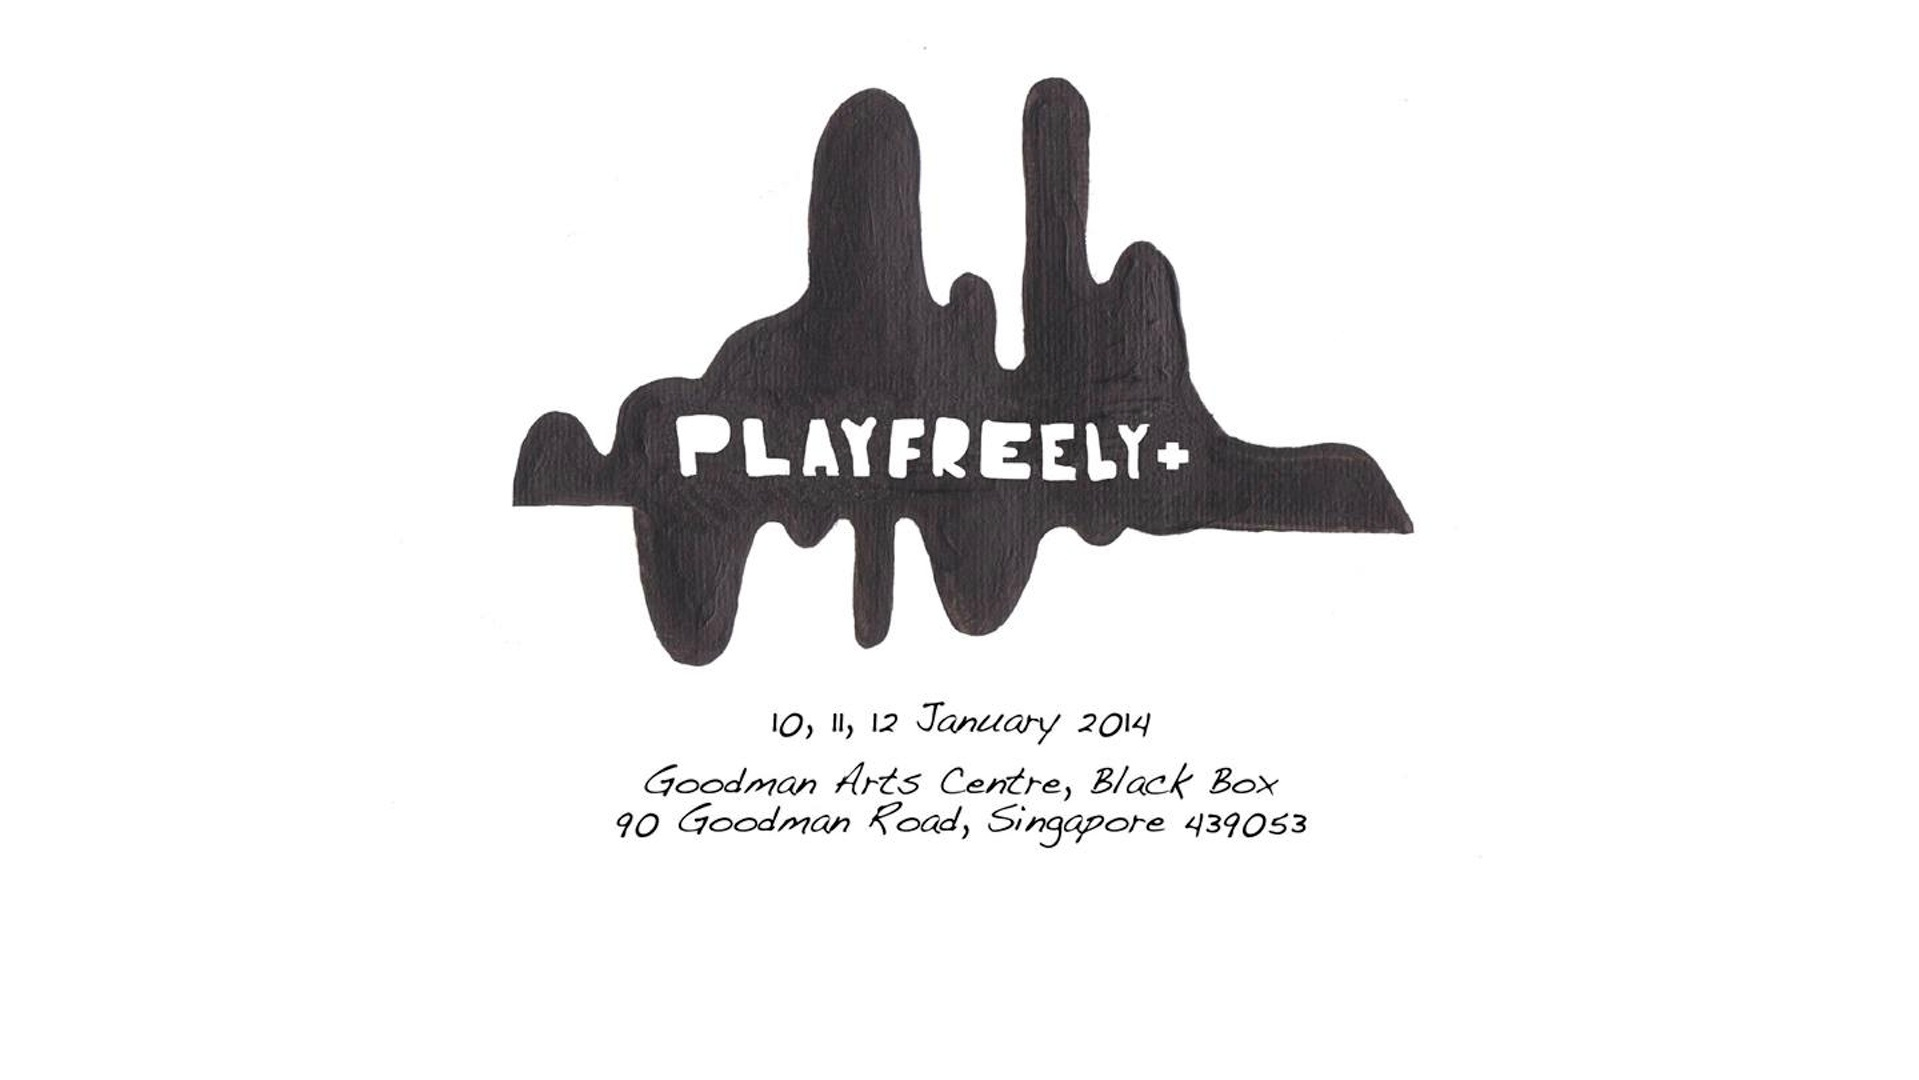 Playfreely+ 2014 (Day 2)